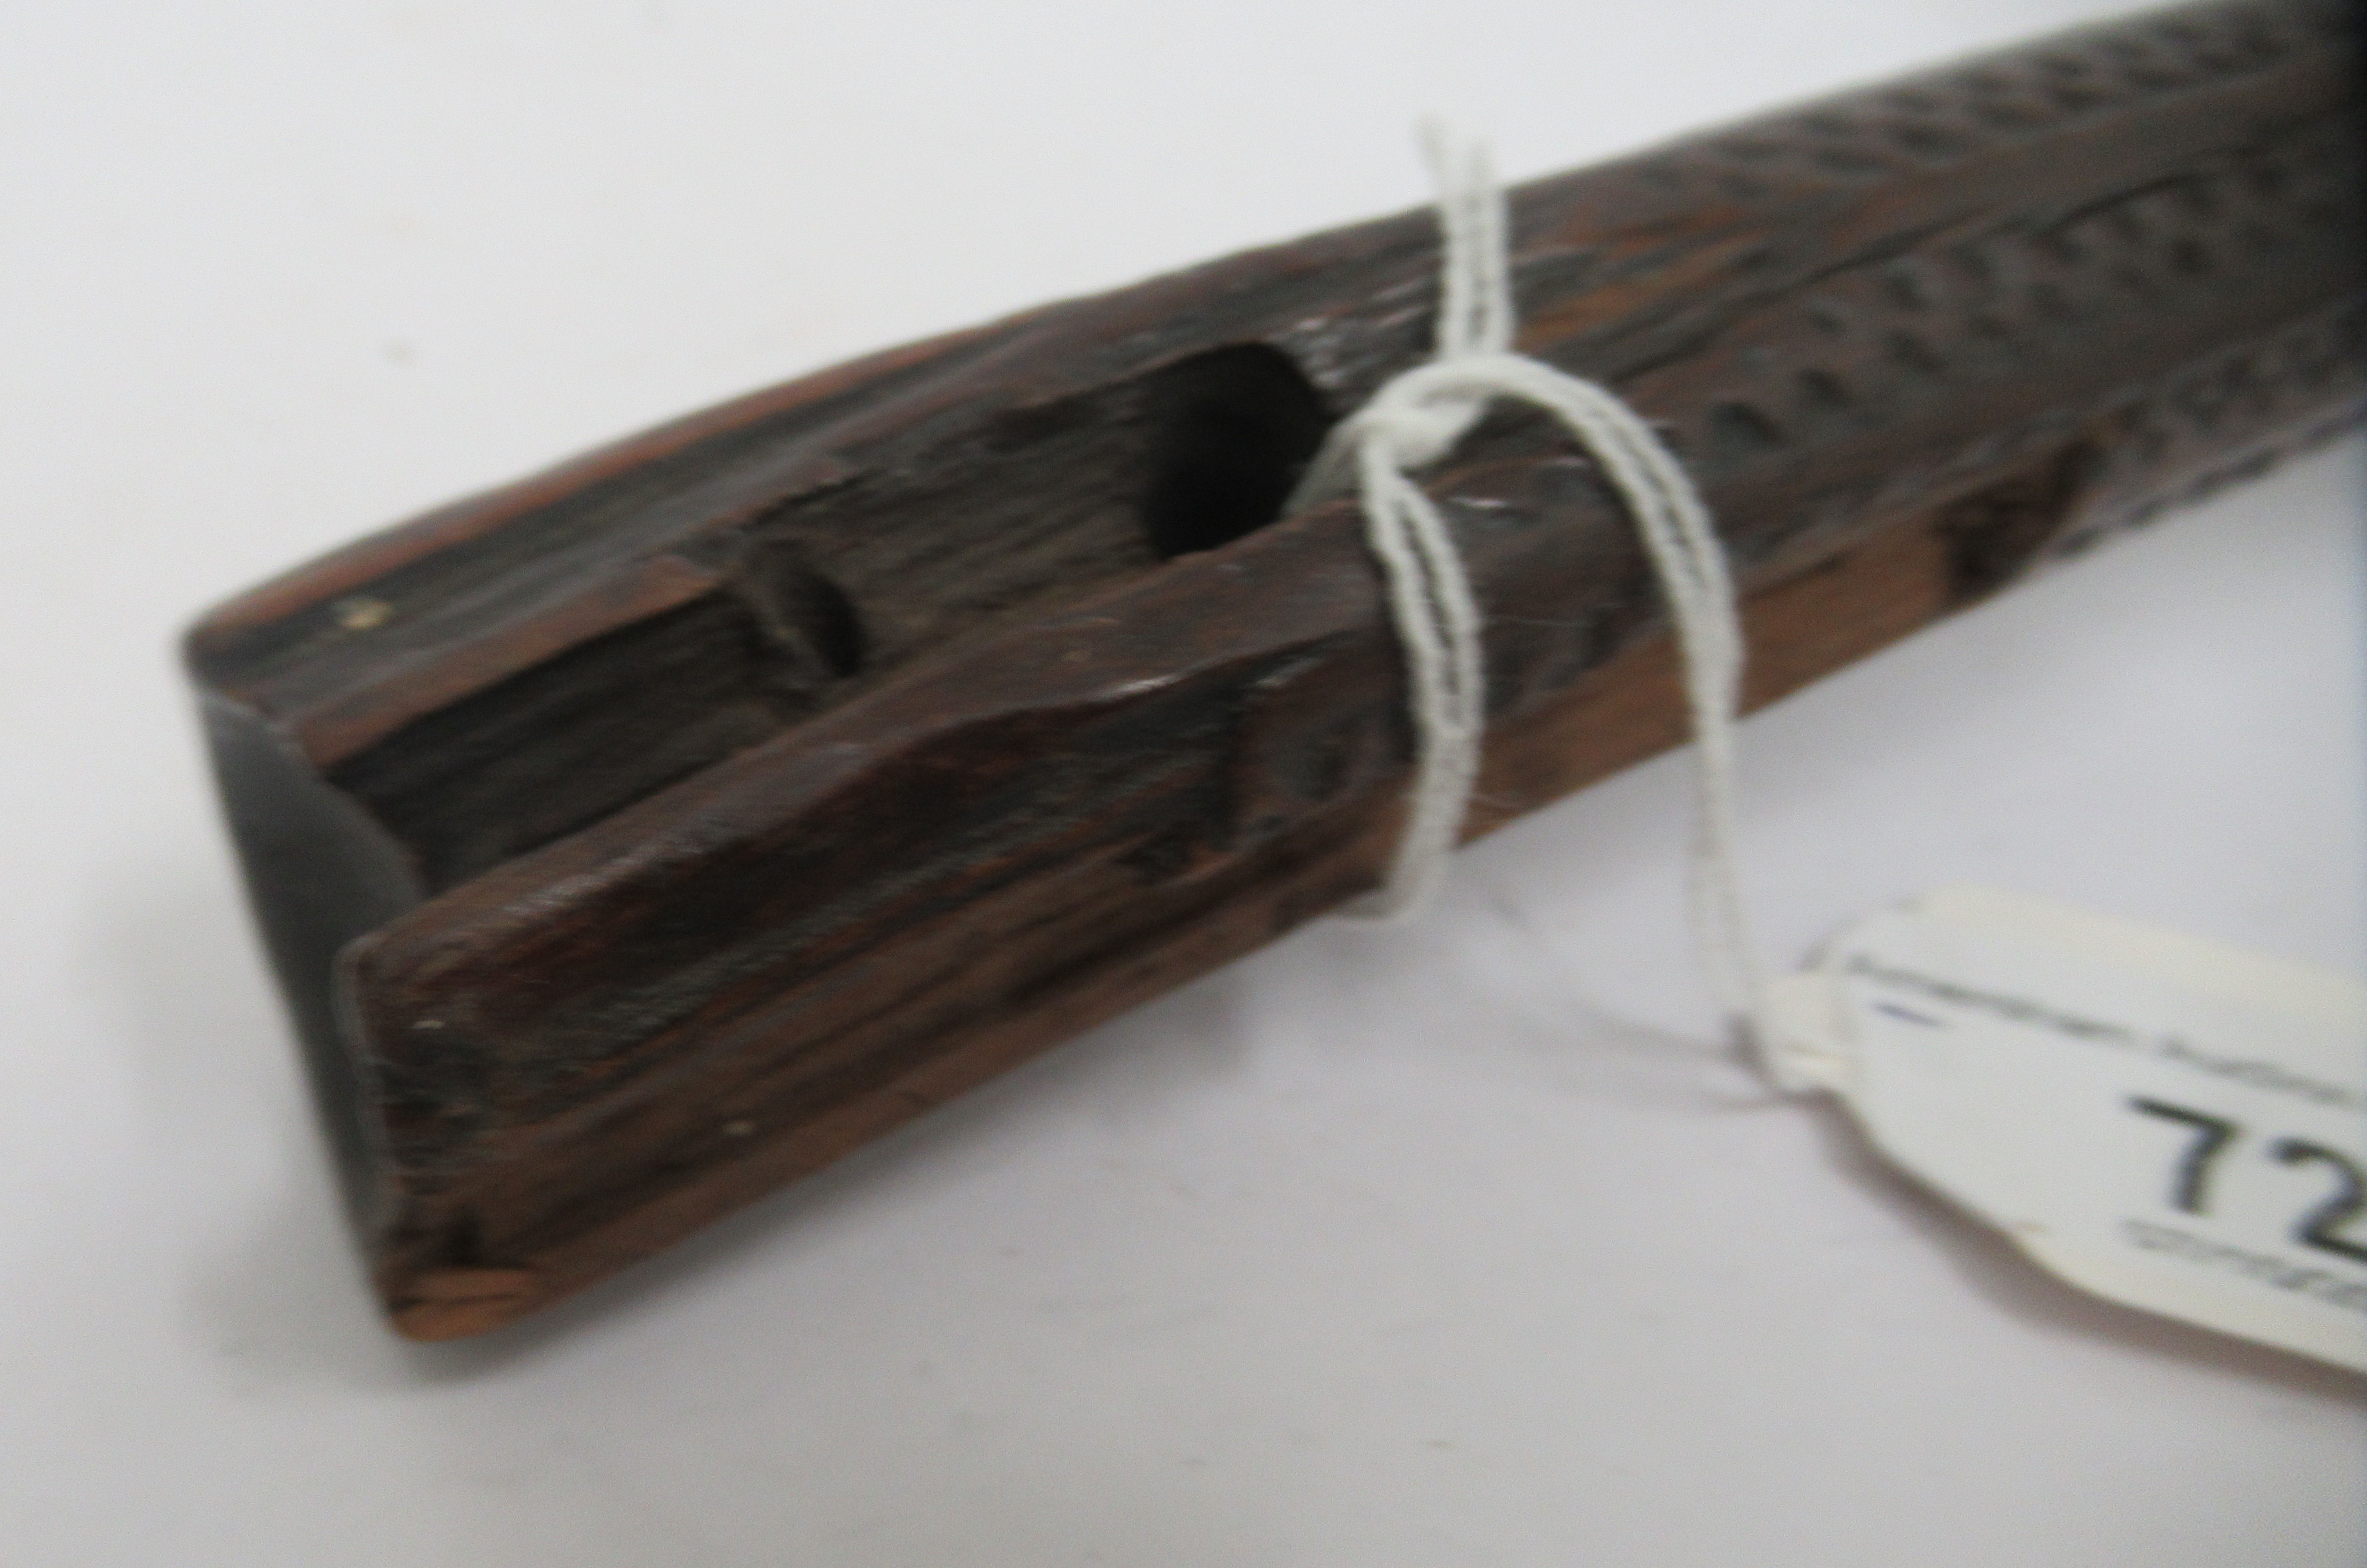 A late 19thC Fijian hardwood Iula Tavatava throwing club, the handle carved with geometric patterns - Image 9 of 10